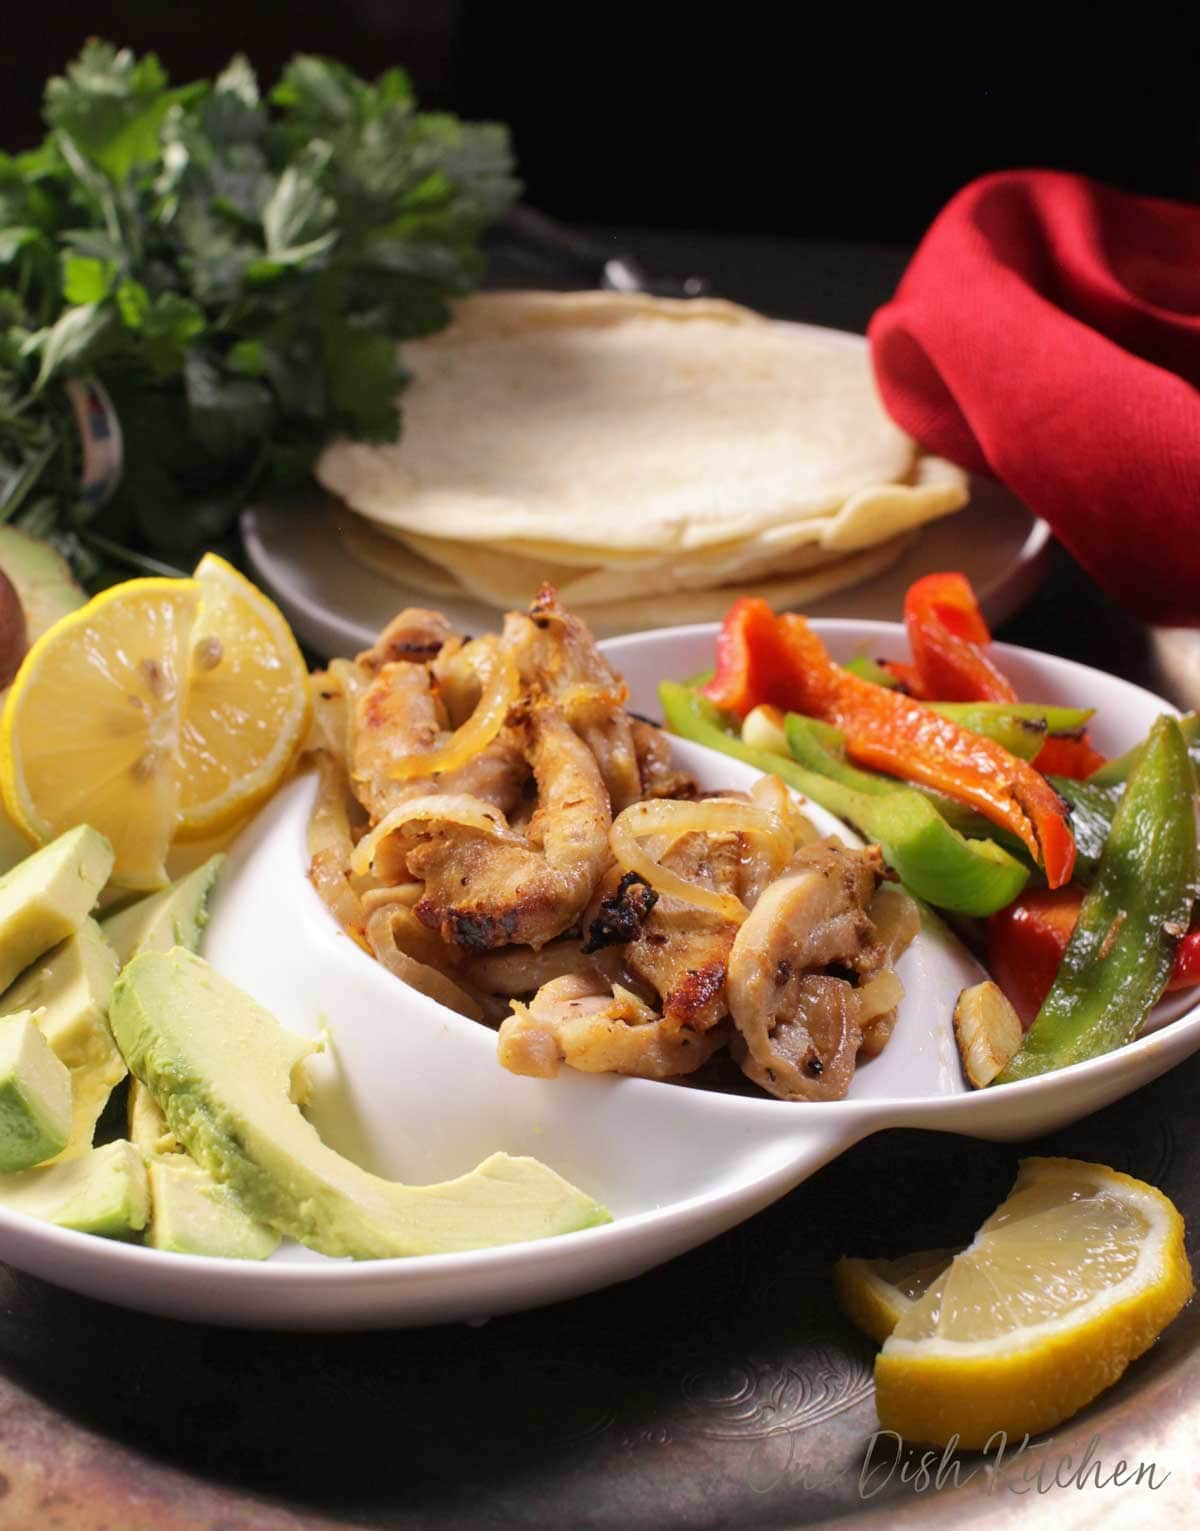 A plate of chicken with onions, sliced red and green bell peppers, avocado slices next to a plate of flour tortillas.